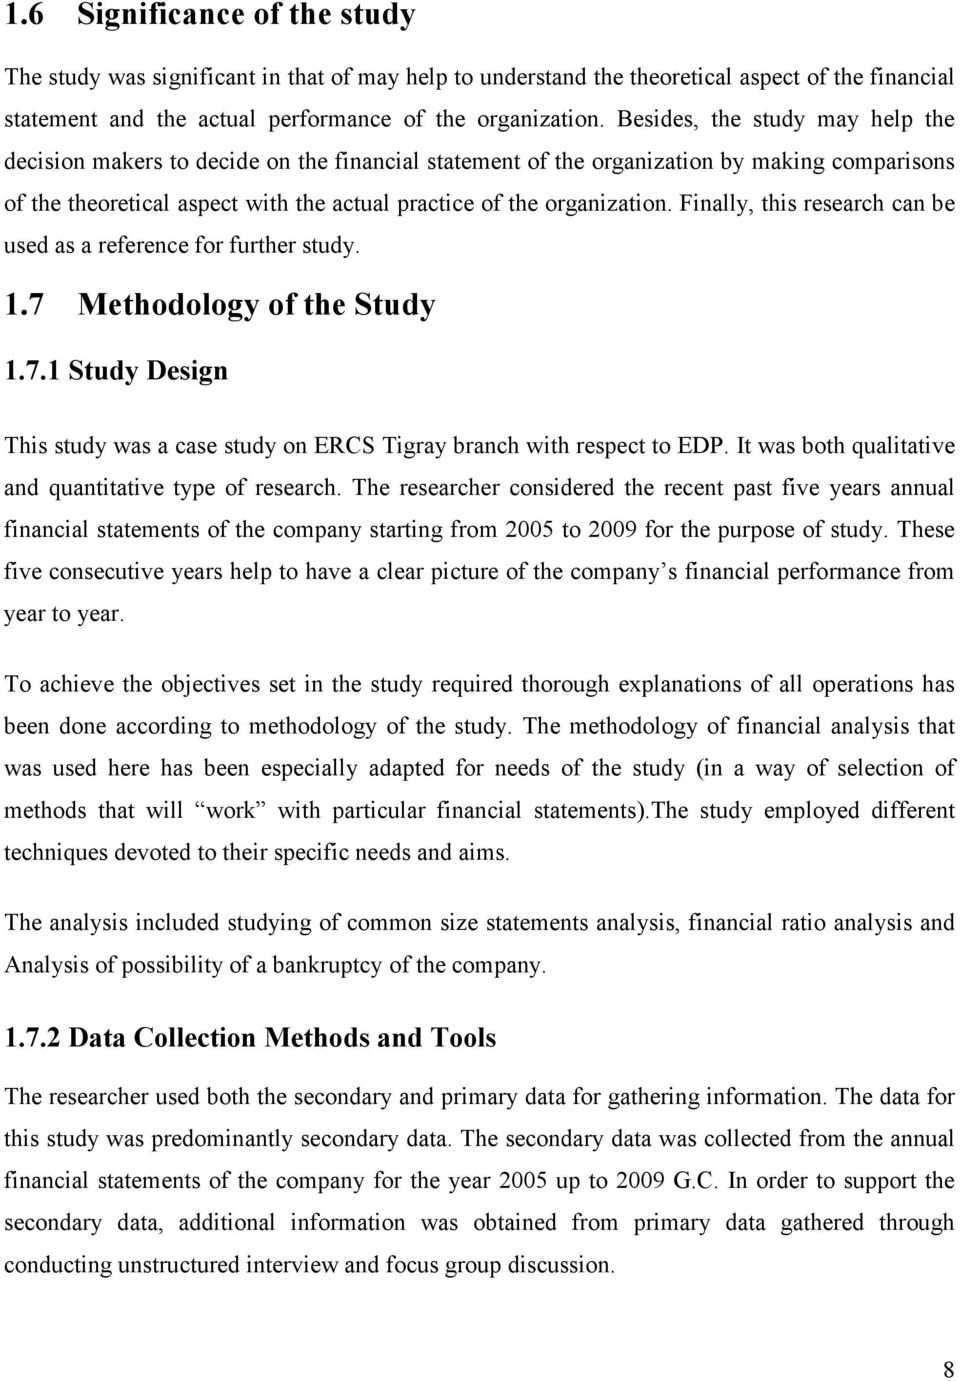 financial statement analysis case study solution